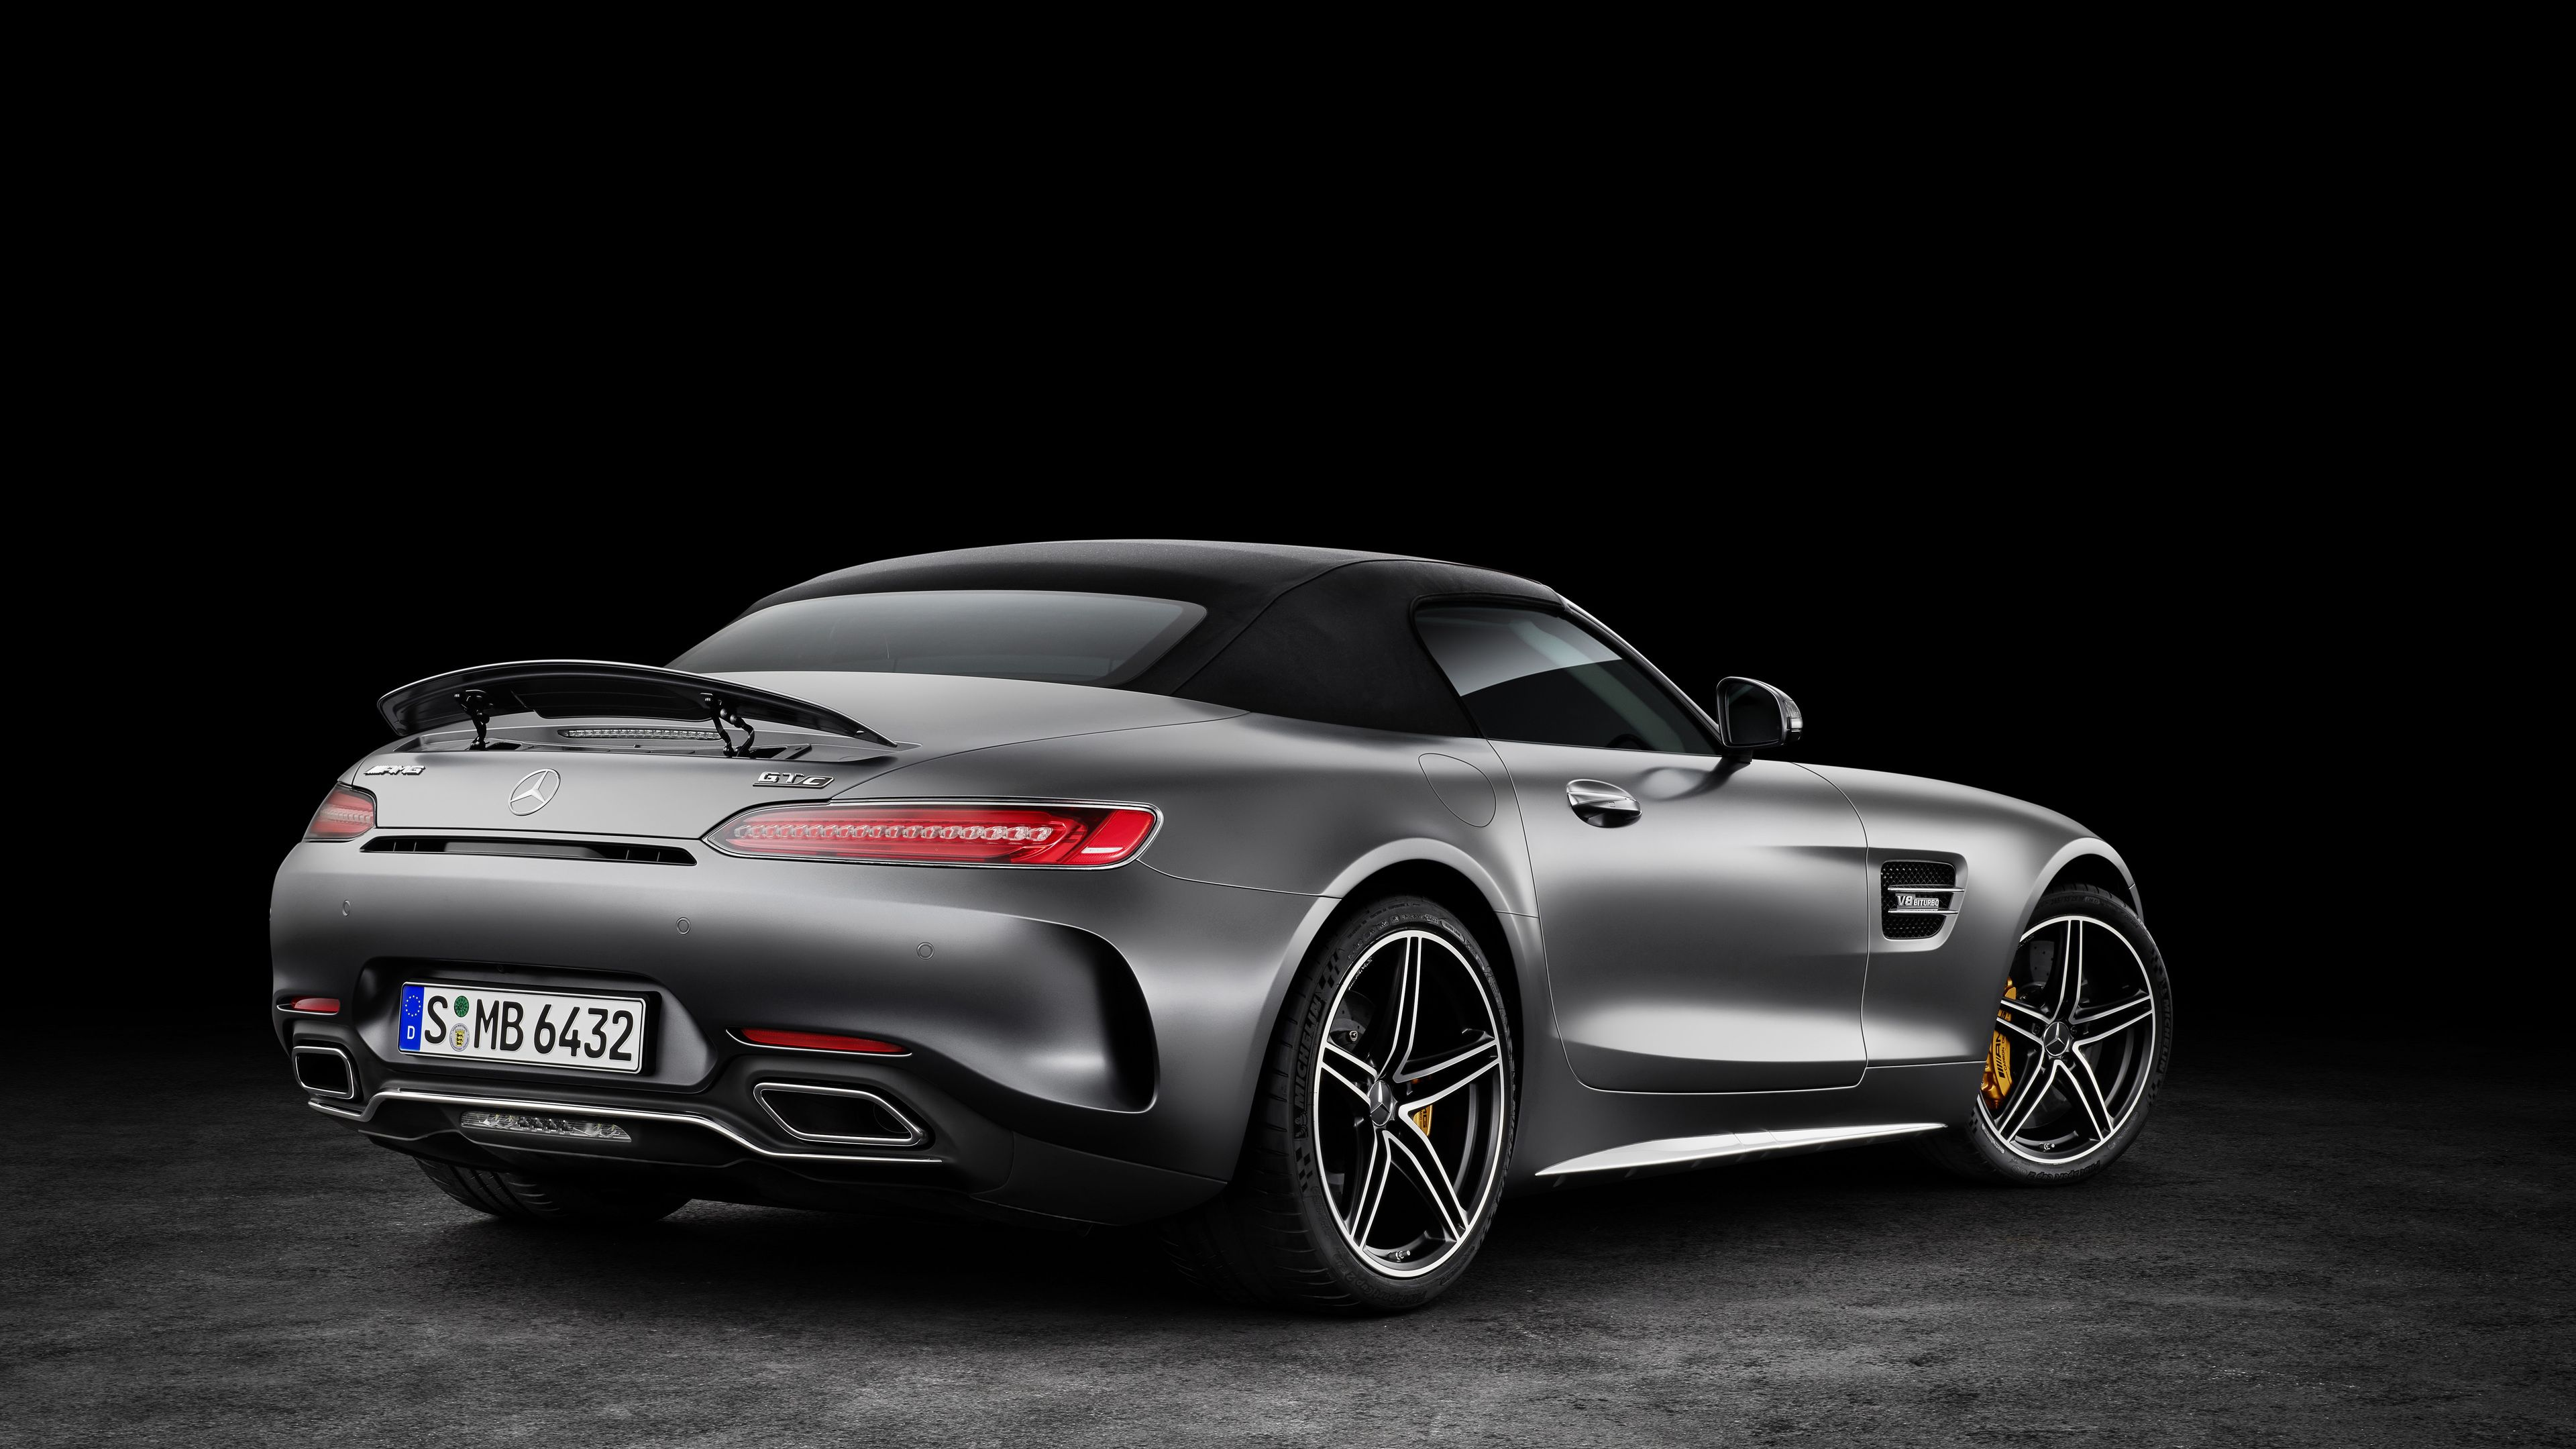 2018 Mercedes Amg Gt C Roadster Mercedes Benz Wallpapers Cars